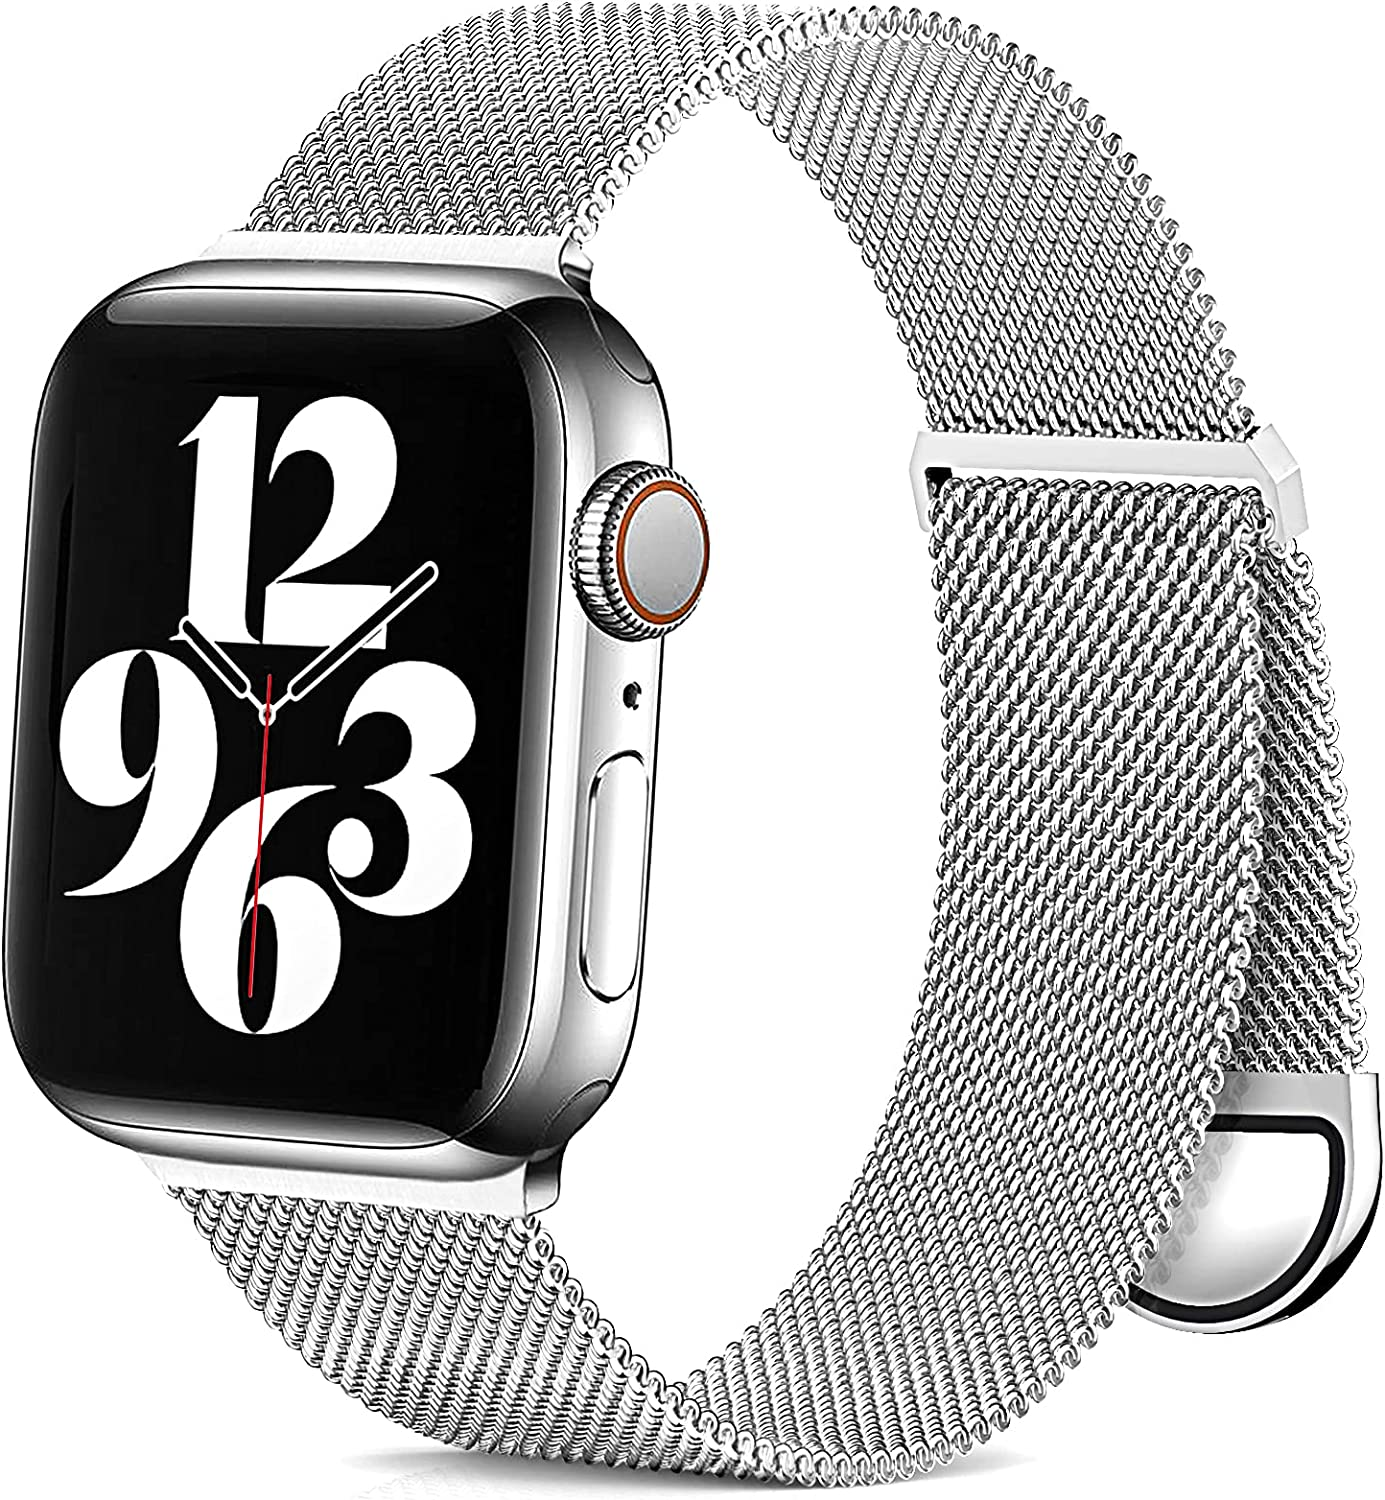 ZALAVER Metal Band Compatible with Apple Watch Bands 38mm 40mm 42mm 44mm, Adjustable Magnetic Stainless Steel Mesh Replacement Strap Compatible with iWatch Series 6 5 4 3 2 1 SE Women Men 38mm/40mm